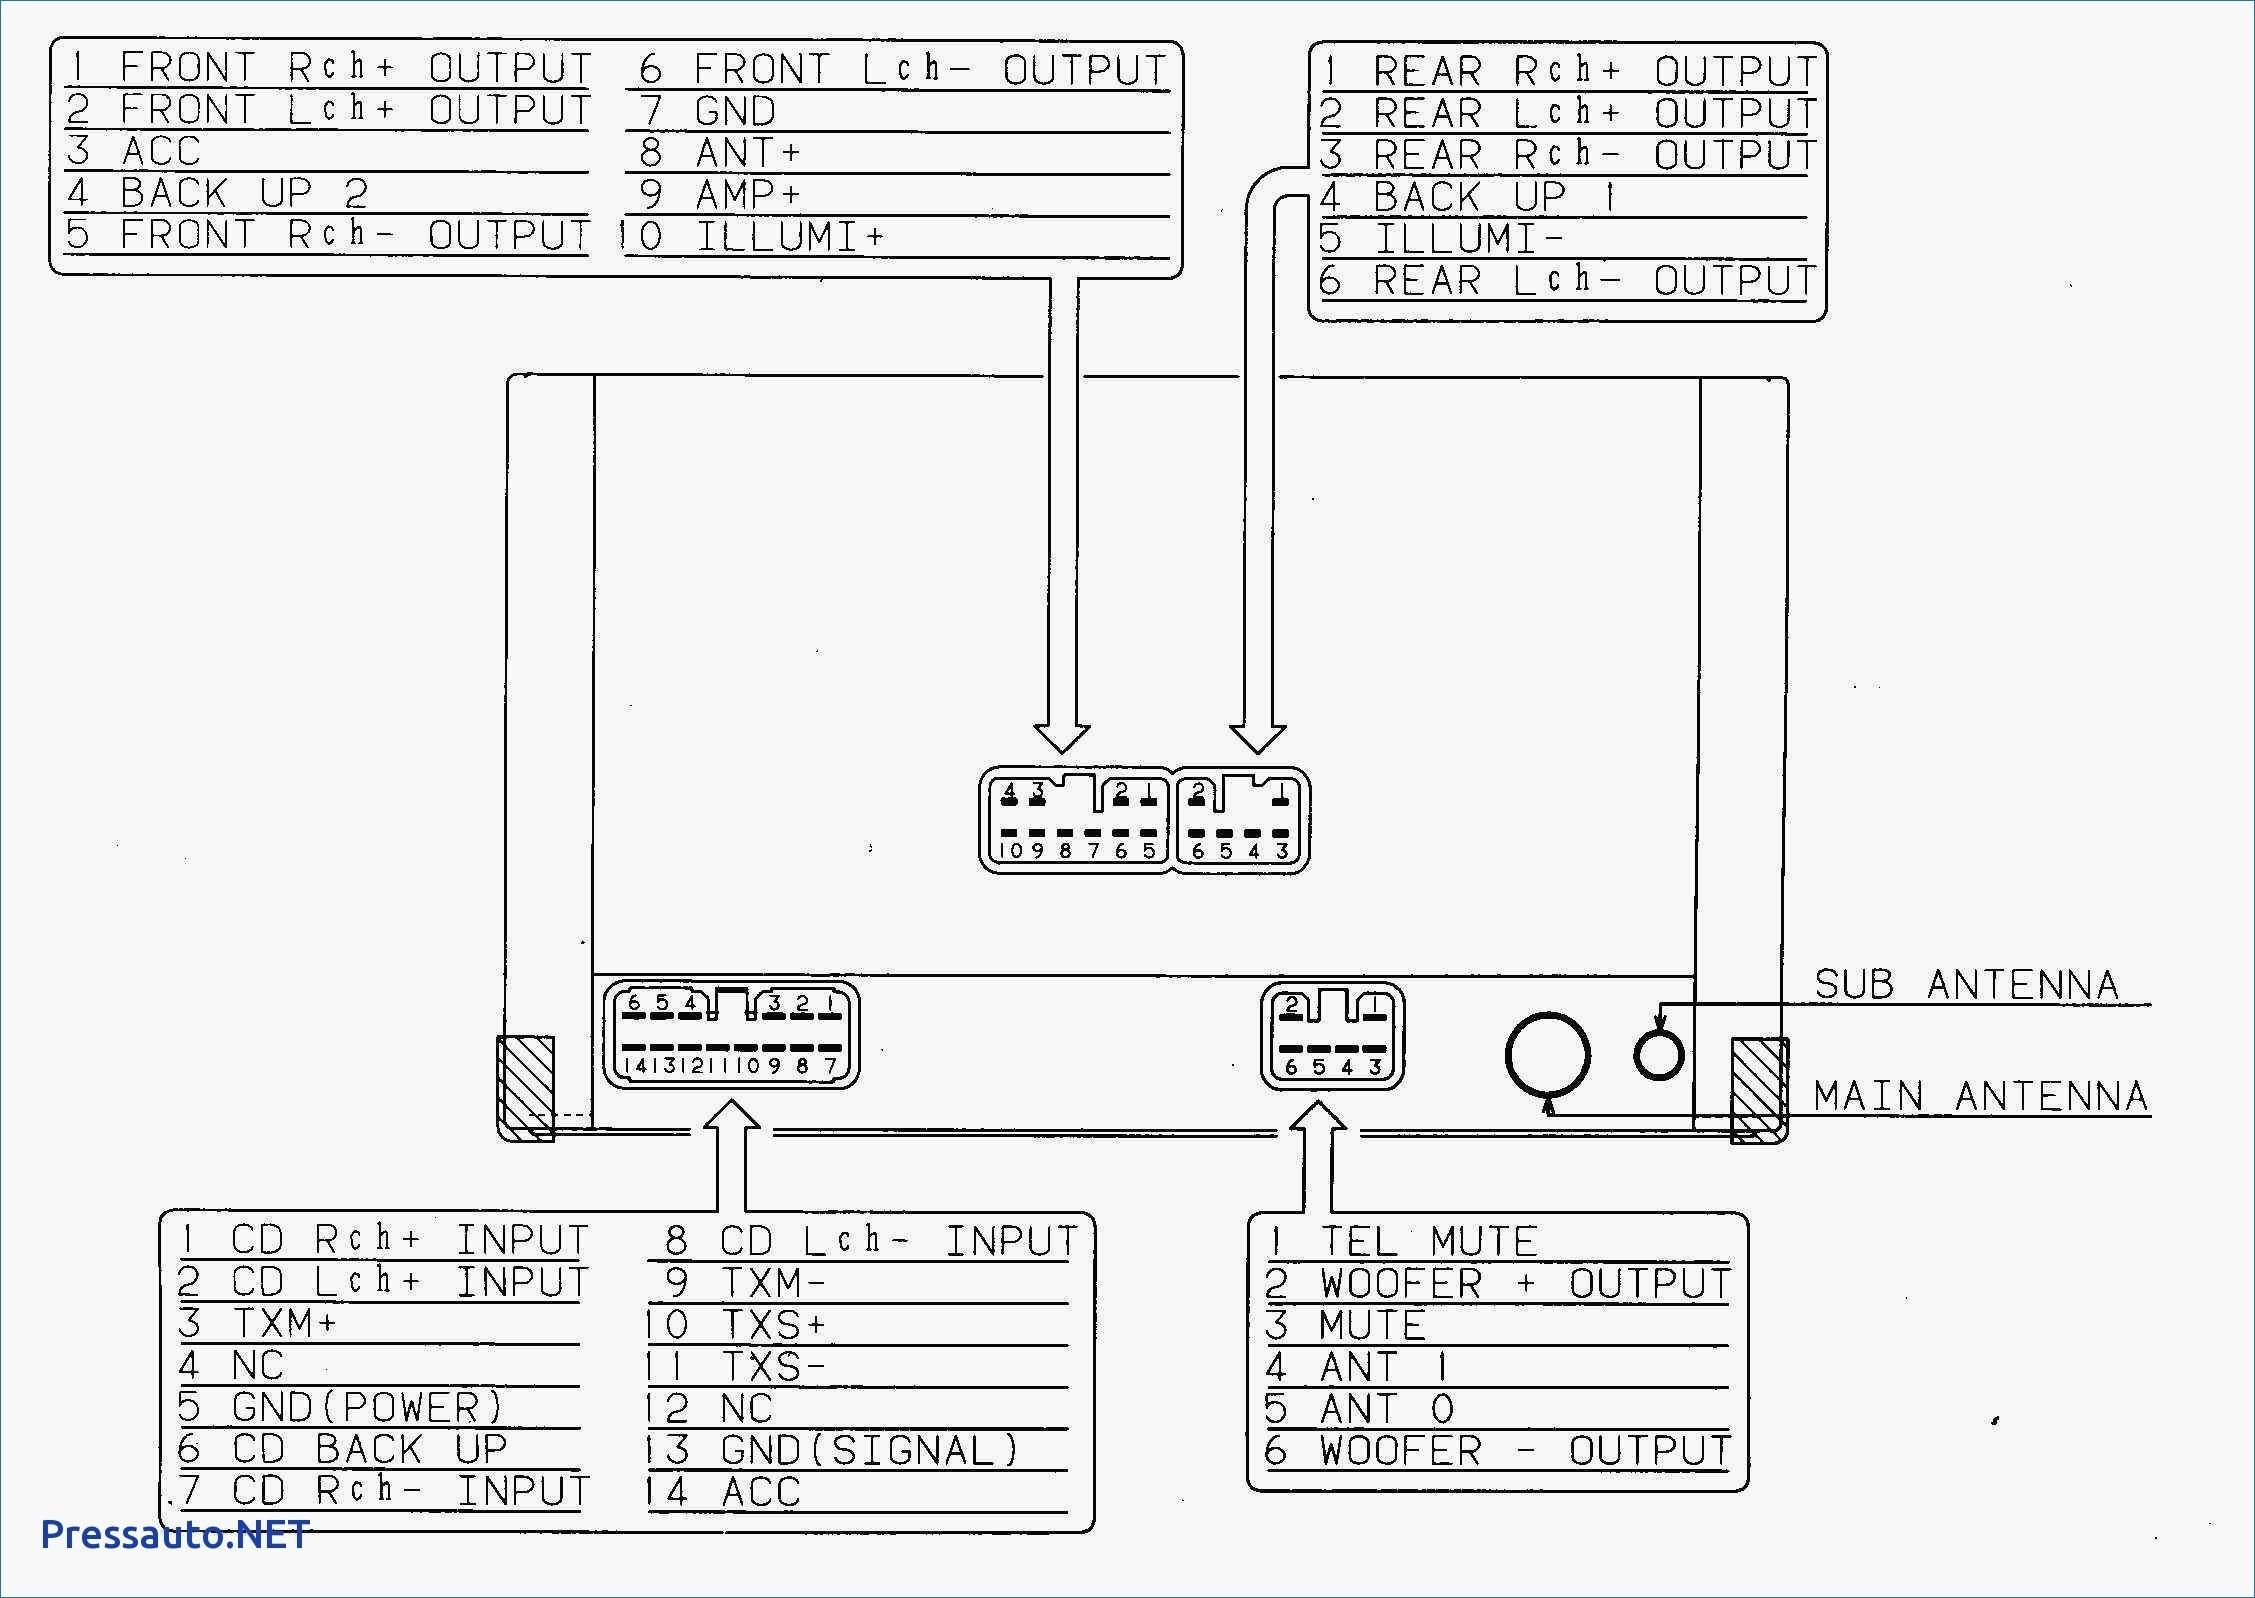 12 Good Bazooka Bass Tube Wiring Diagram For You | Car amplifier, Electrical  diagram, Car stereoPinterest